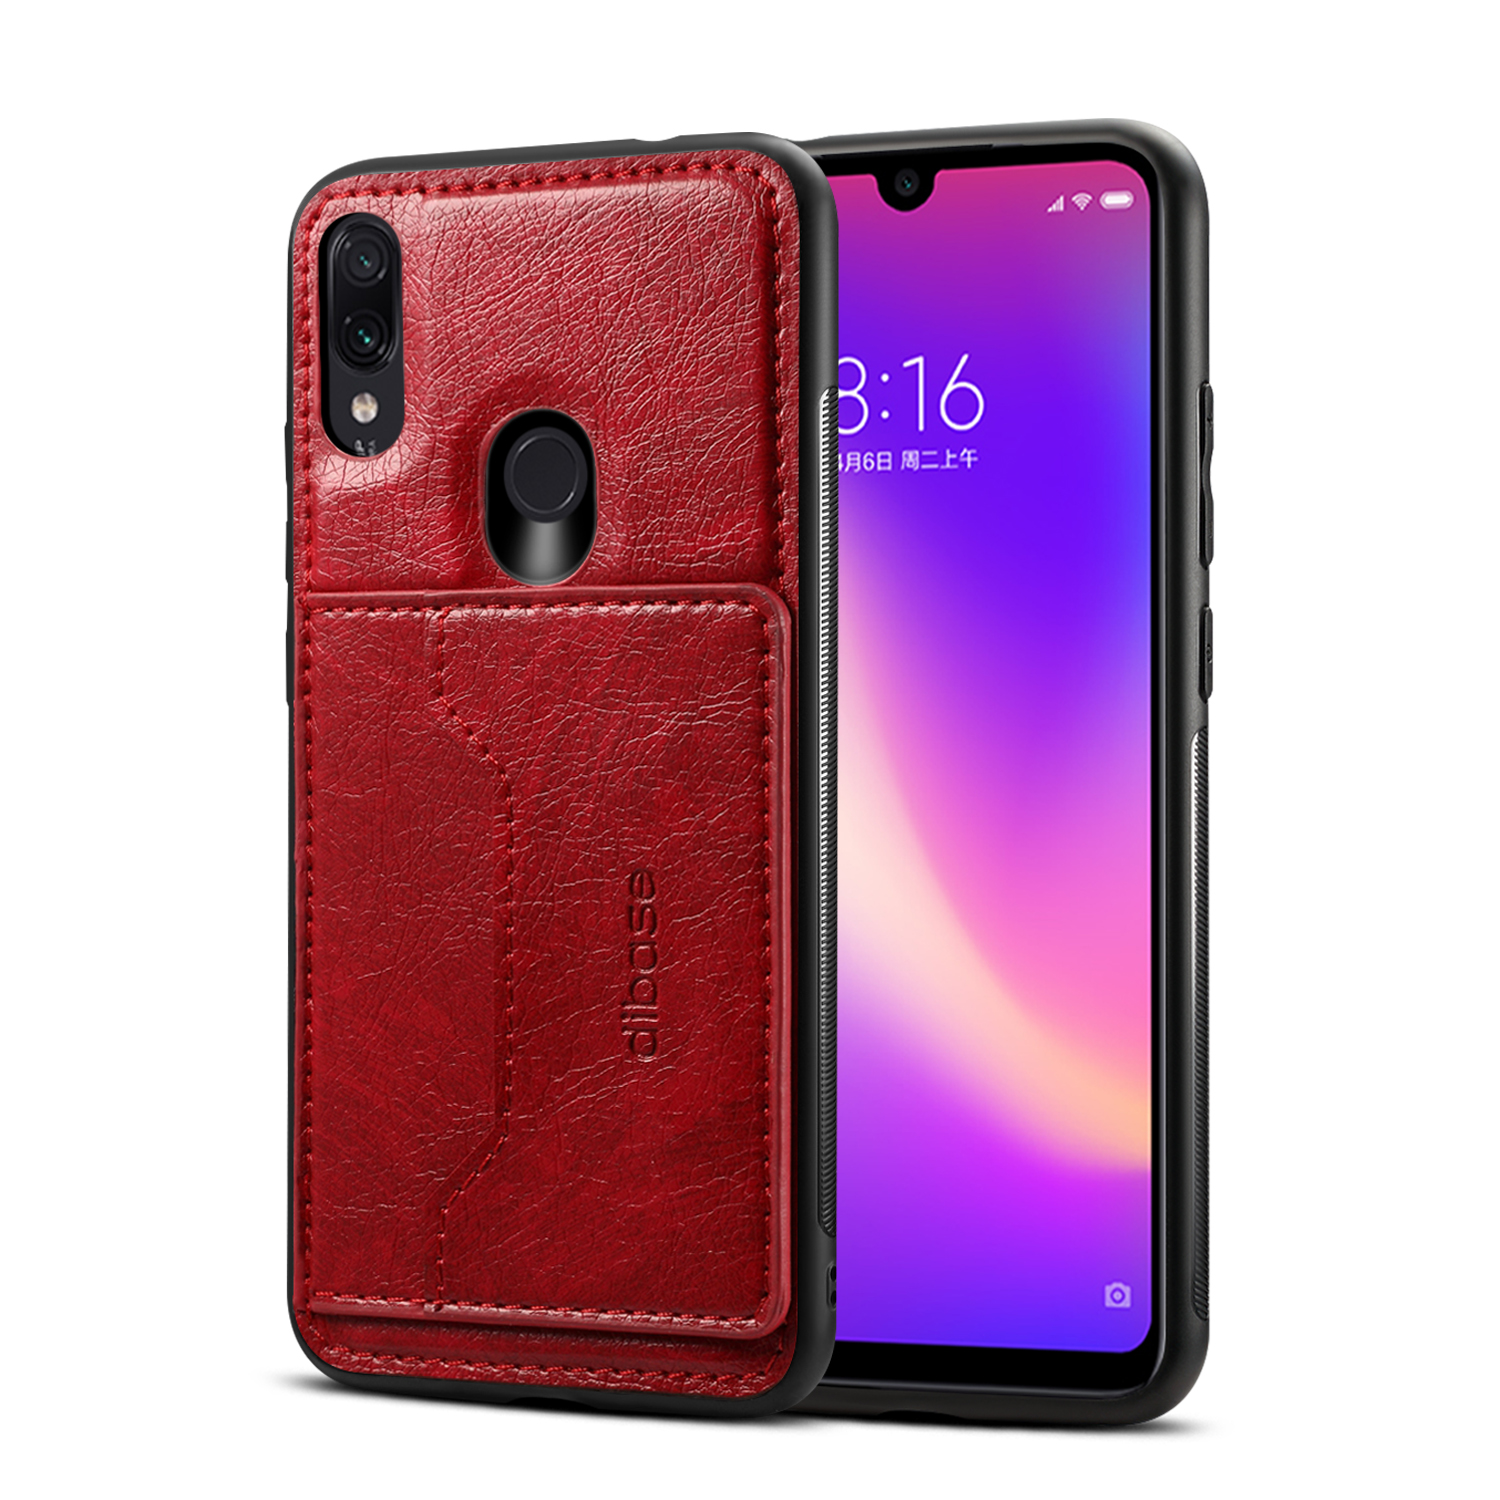 For Redmi NOTE 7 / redmi NOTE 7 pro Retro PU Leather Wallet Card Holder Stand Non-slip Shockproof Cell Phone Case red